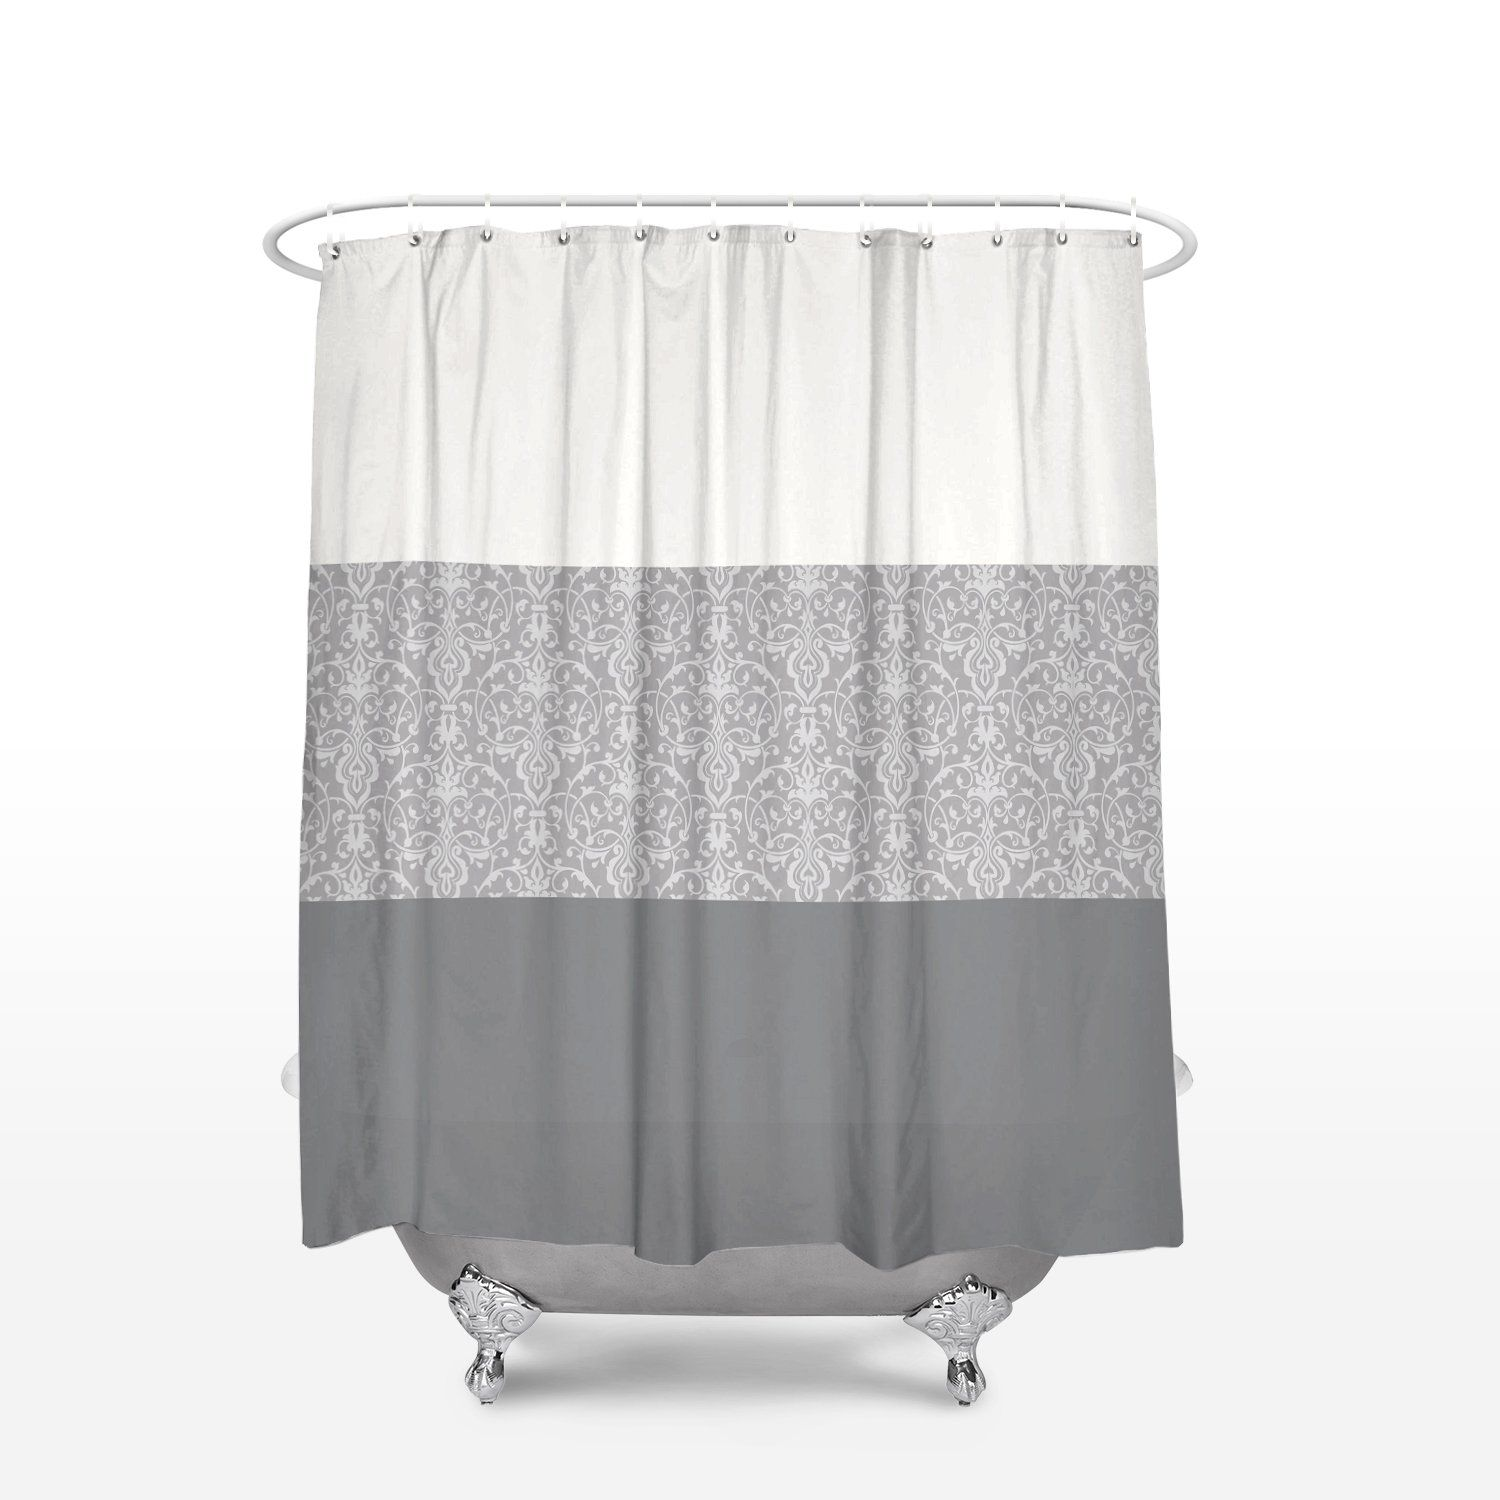 Pin By Shurta On Extra Long Shower Curtain Fabric Shower Curtains Bathroom Curtains Bathroom Sets